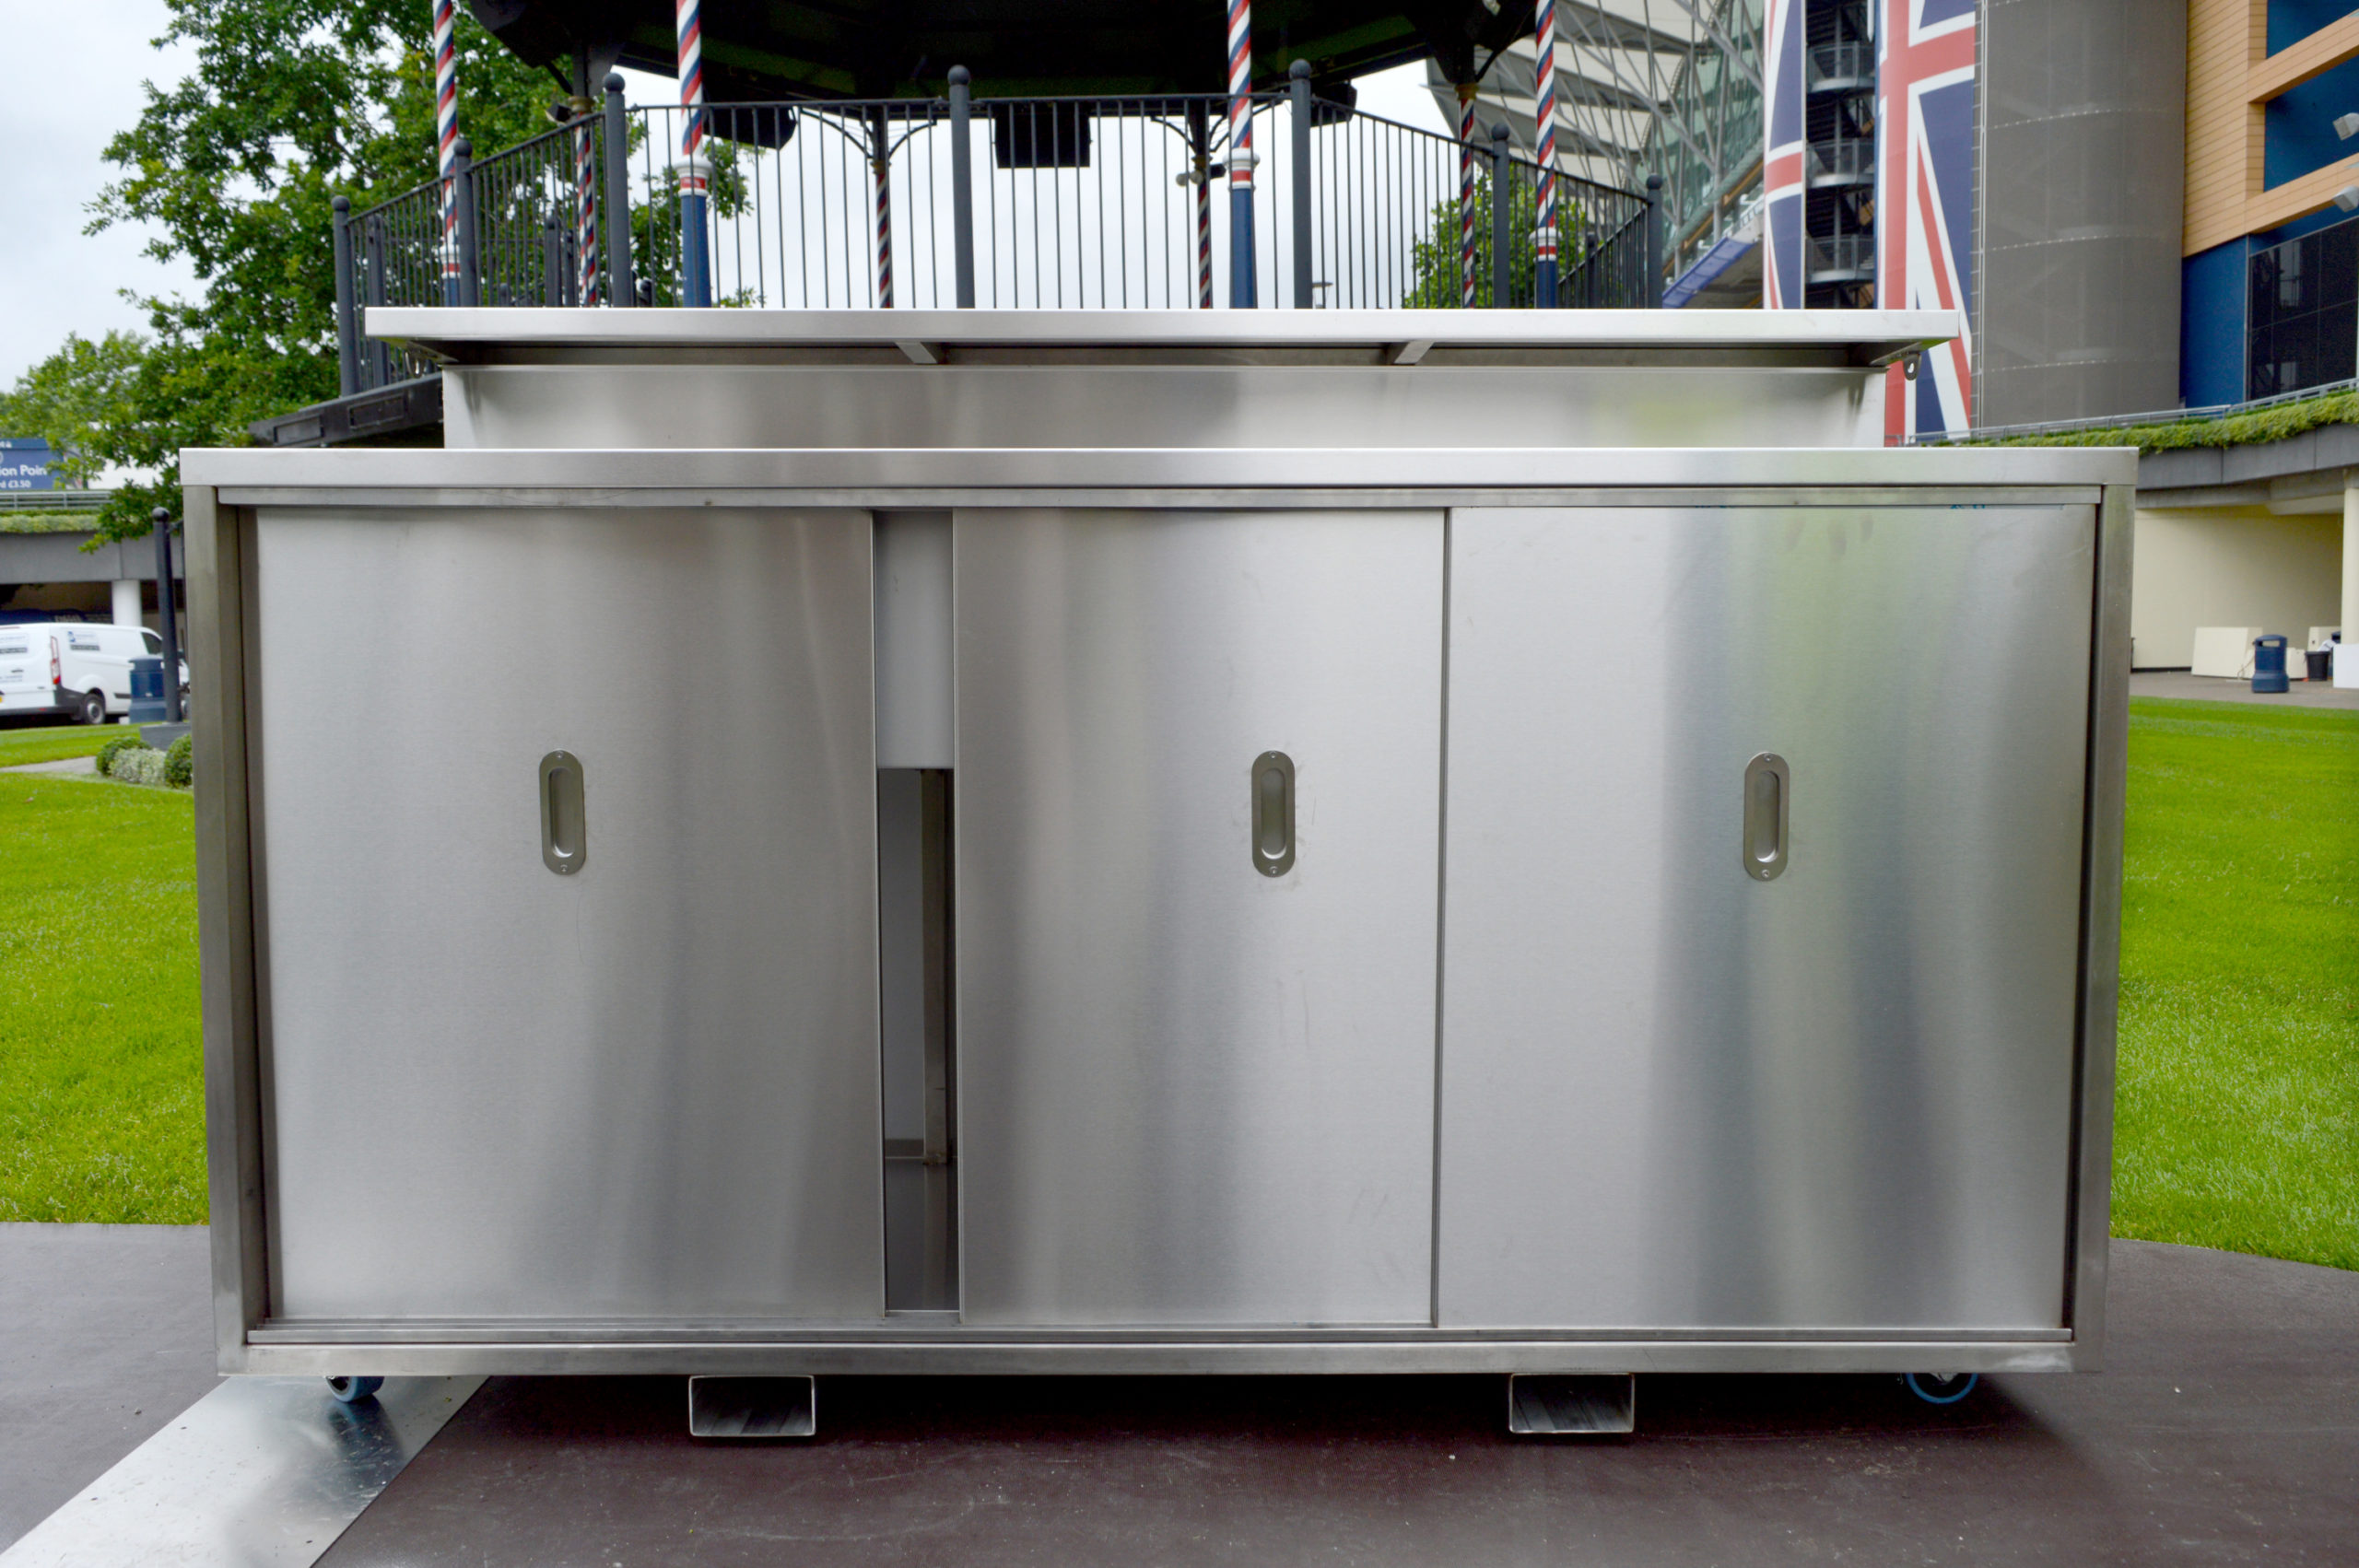 <p>Bespoke Products – Mobile Carts – Mobile Bars – Custom Modular Design – Stainless Steel Standard Unit – Storage</p> <p></p> <p>Stylish, eloquent & taylor made Mobile Drinks Bar image of standard unit option</p> <p></p> <p>Designed to meet the customer needs & objectives to include draught dispense, champagne, Pimms, multi-purpose etc or whatever the customer requires to make their mobile beverage bar unique & exclusive to their brand</p> <p></p> <p>One example of a design. We can design and manufacture to meet customer's specific objectives</p>